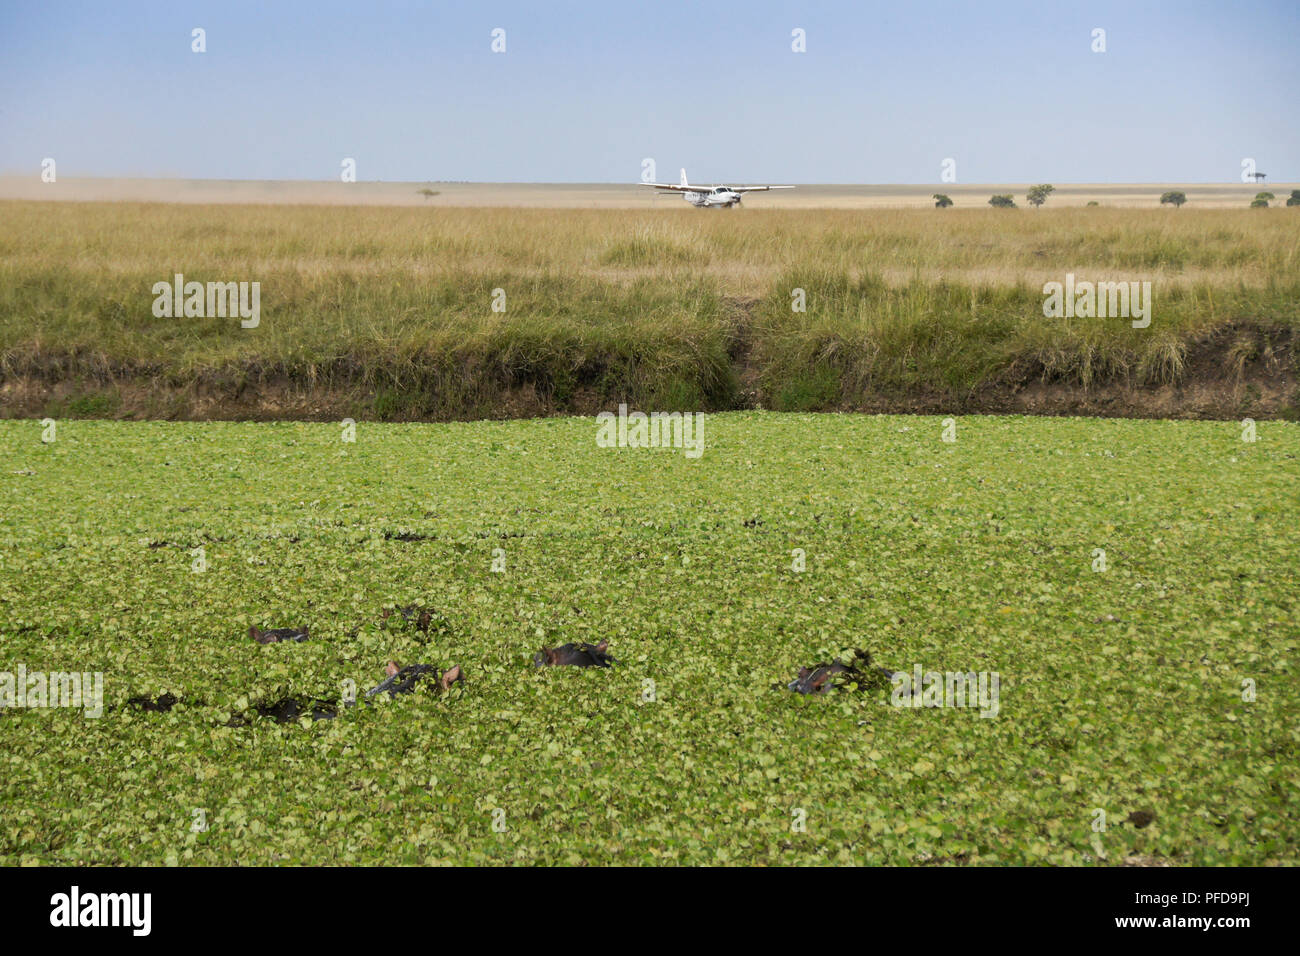 Pool Abdeckplane Löst Sich Auf Hippos Wallow In Pool Covered With Water Hyacinth While A Plane